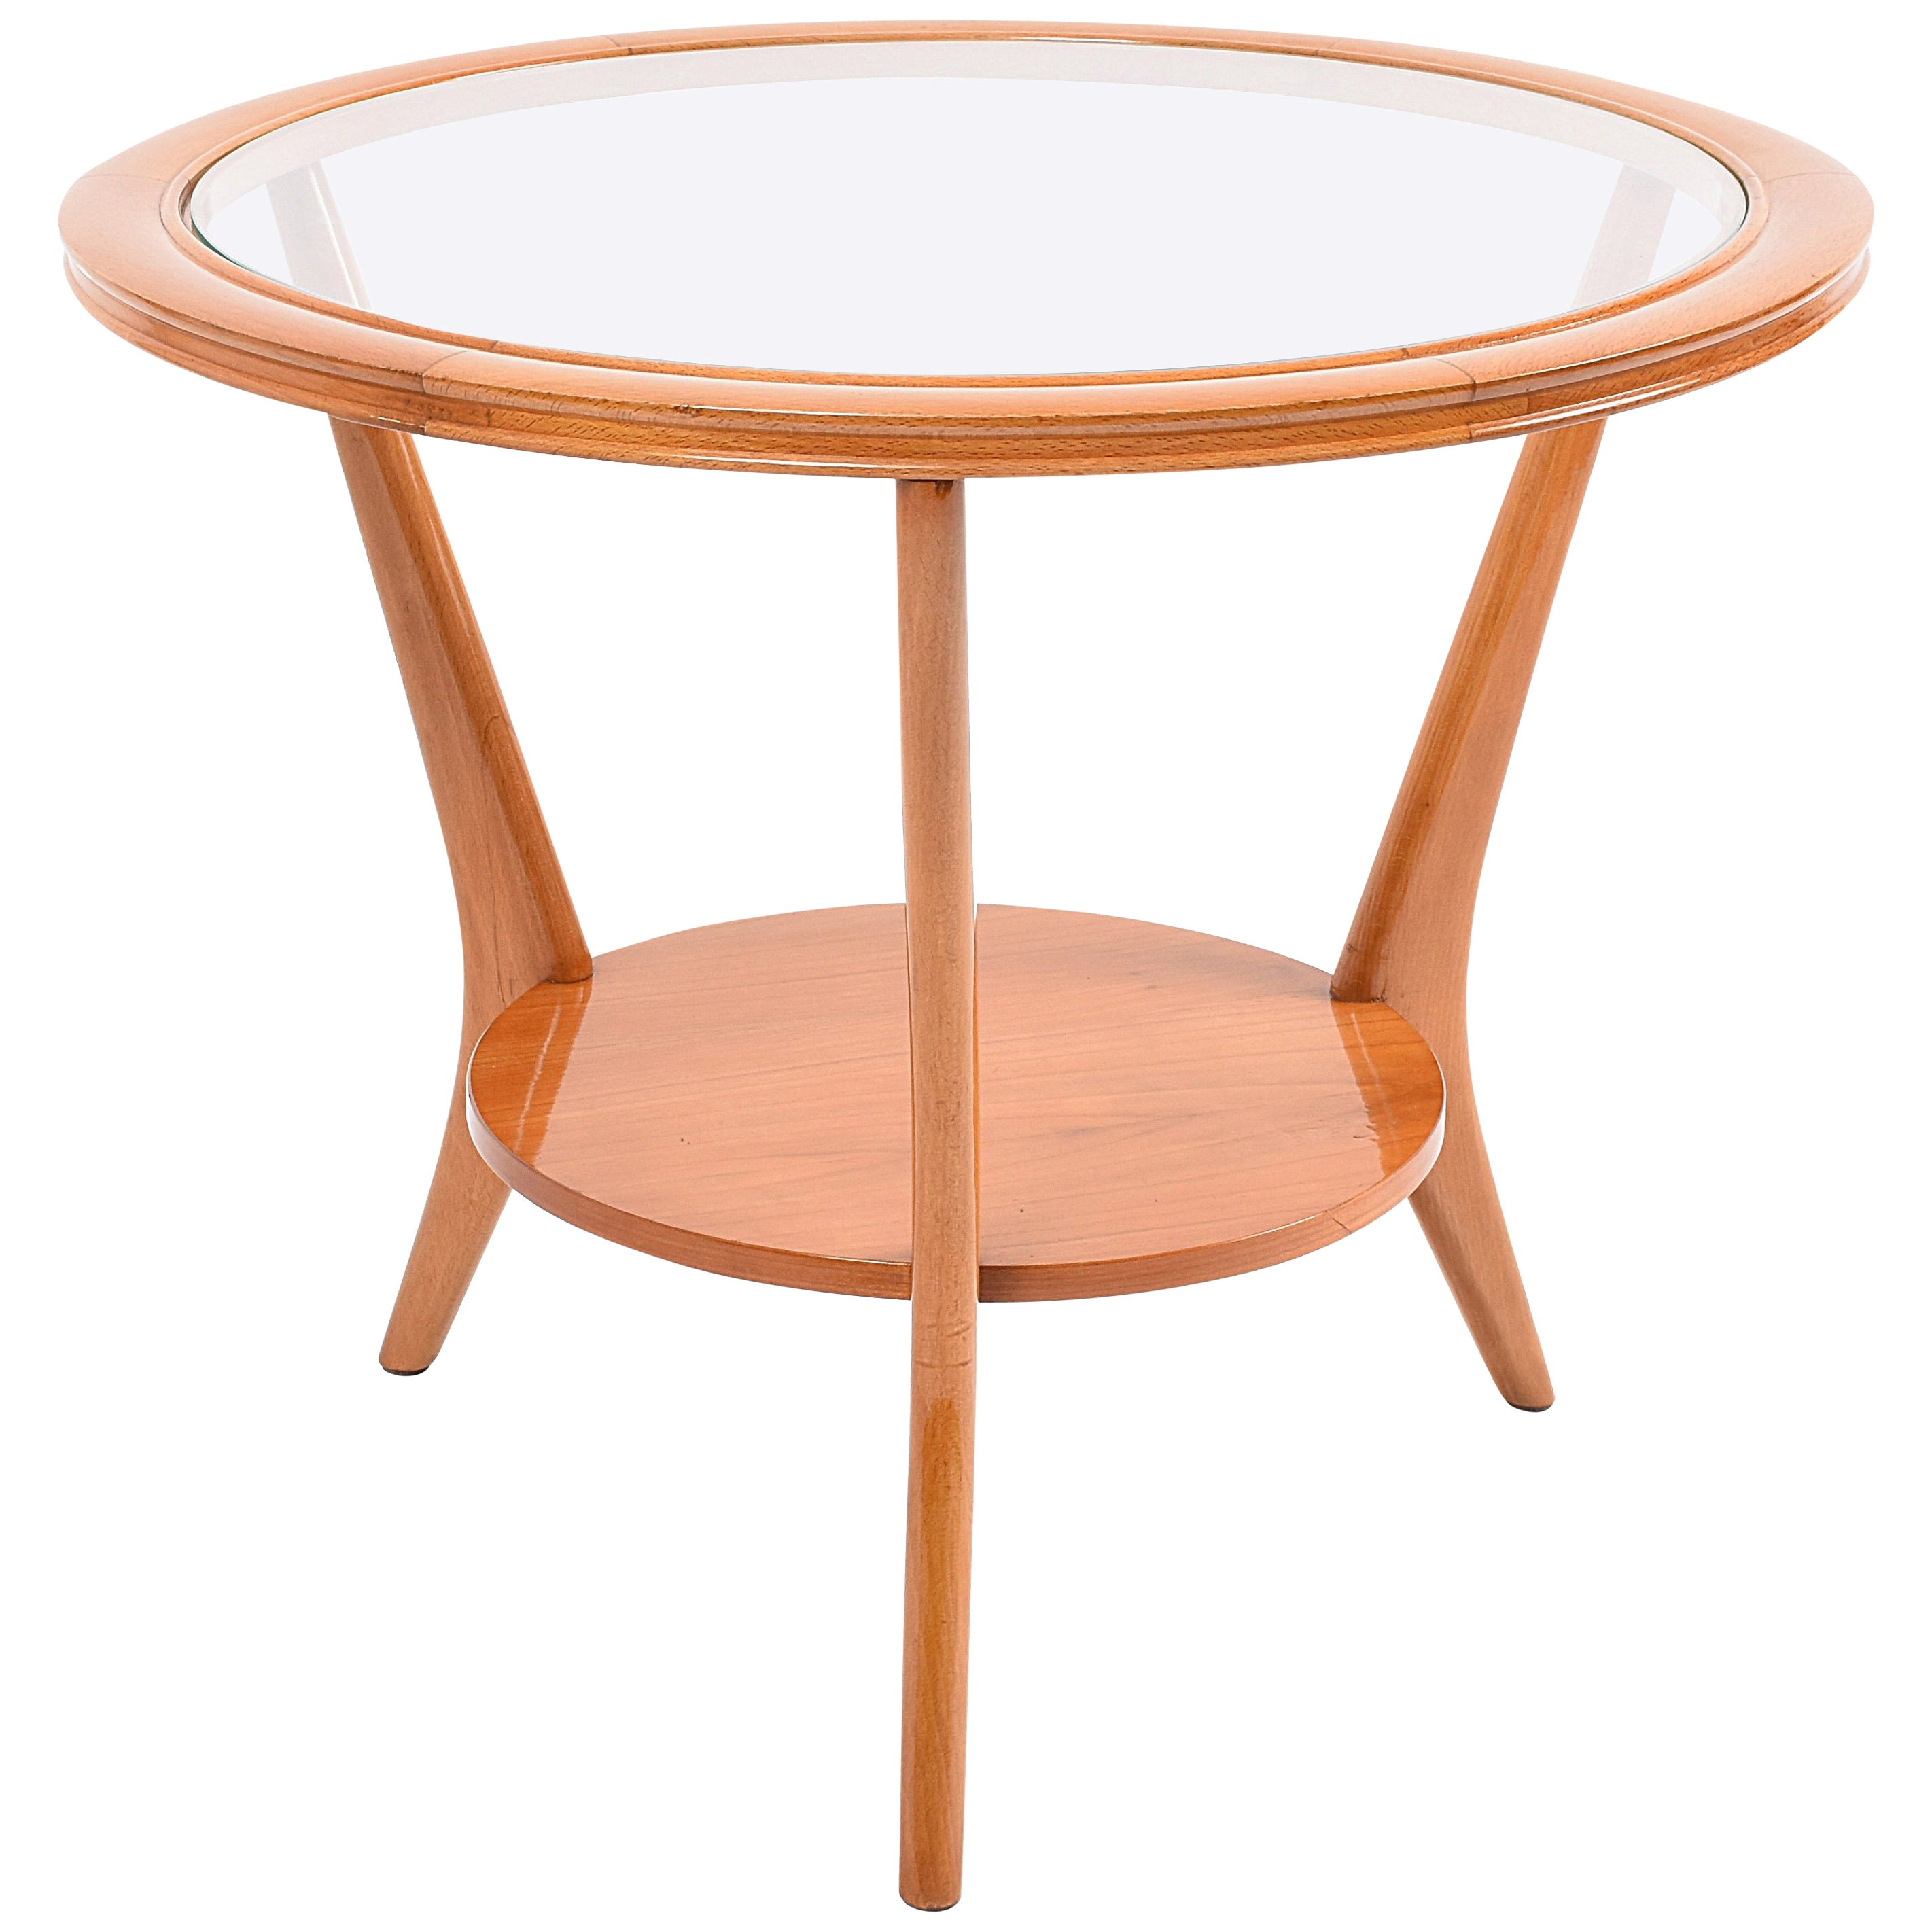 Midcentury Glass and Wood Italian Coffee Table after Gio Ponti, 1950s